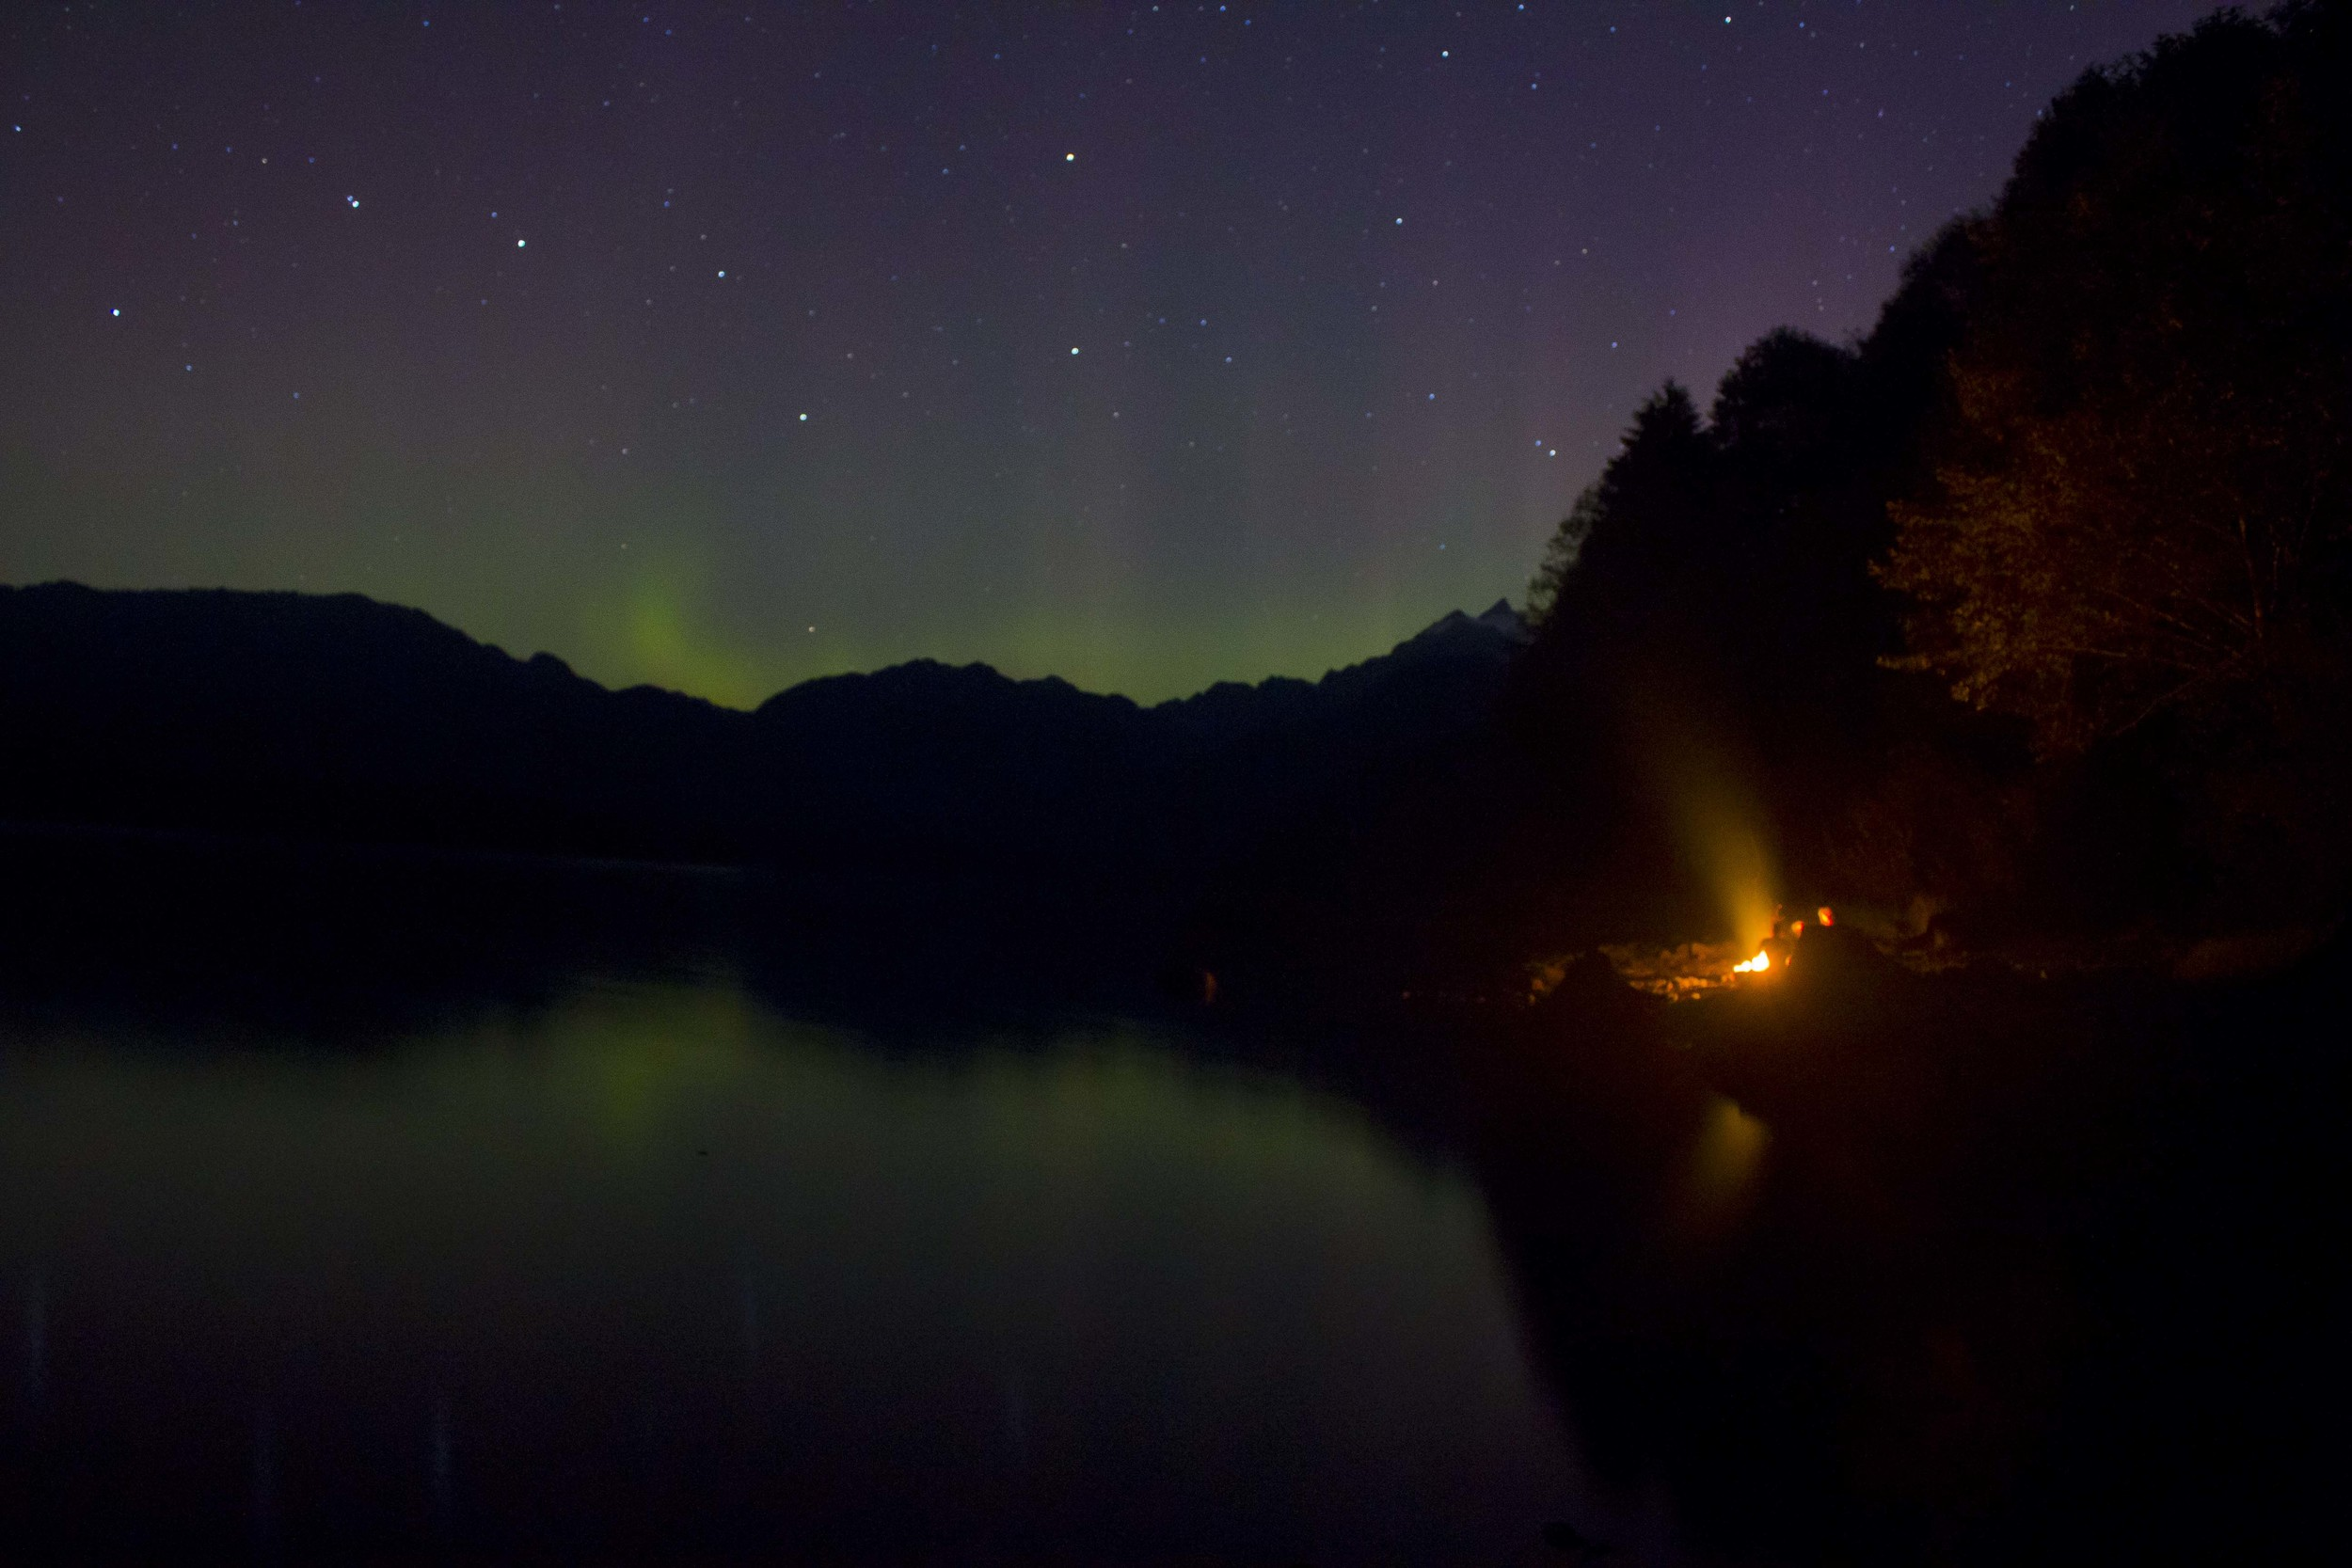 Got a chance to see/shoot the Northern Lights for the first time near Mount Baker. Maple Grove, 2015.